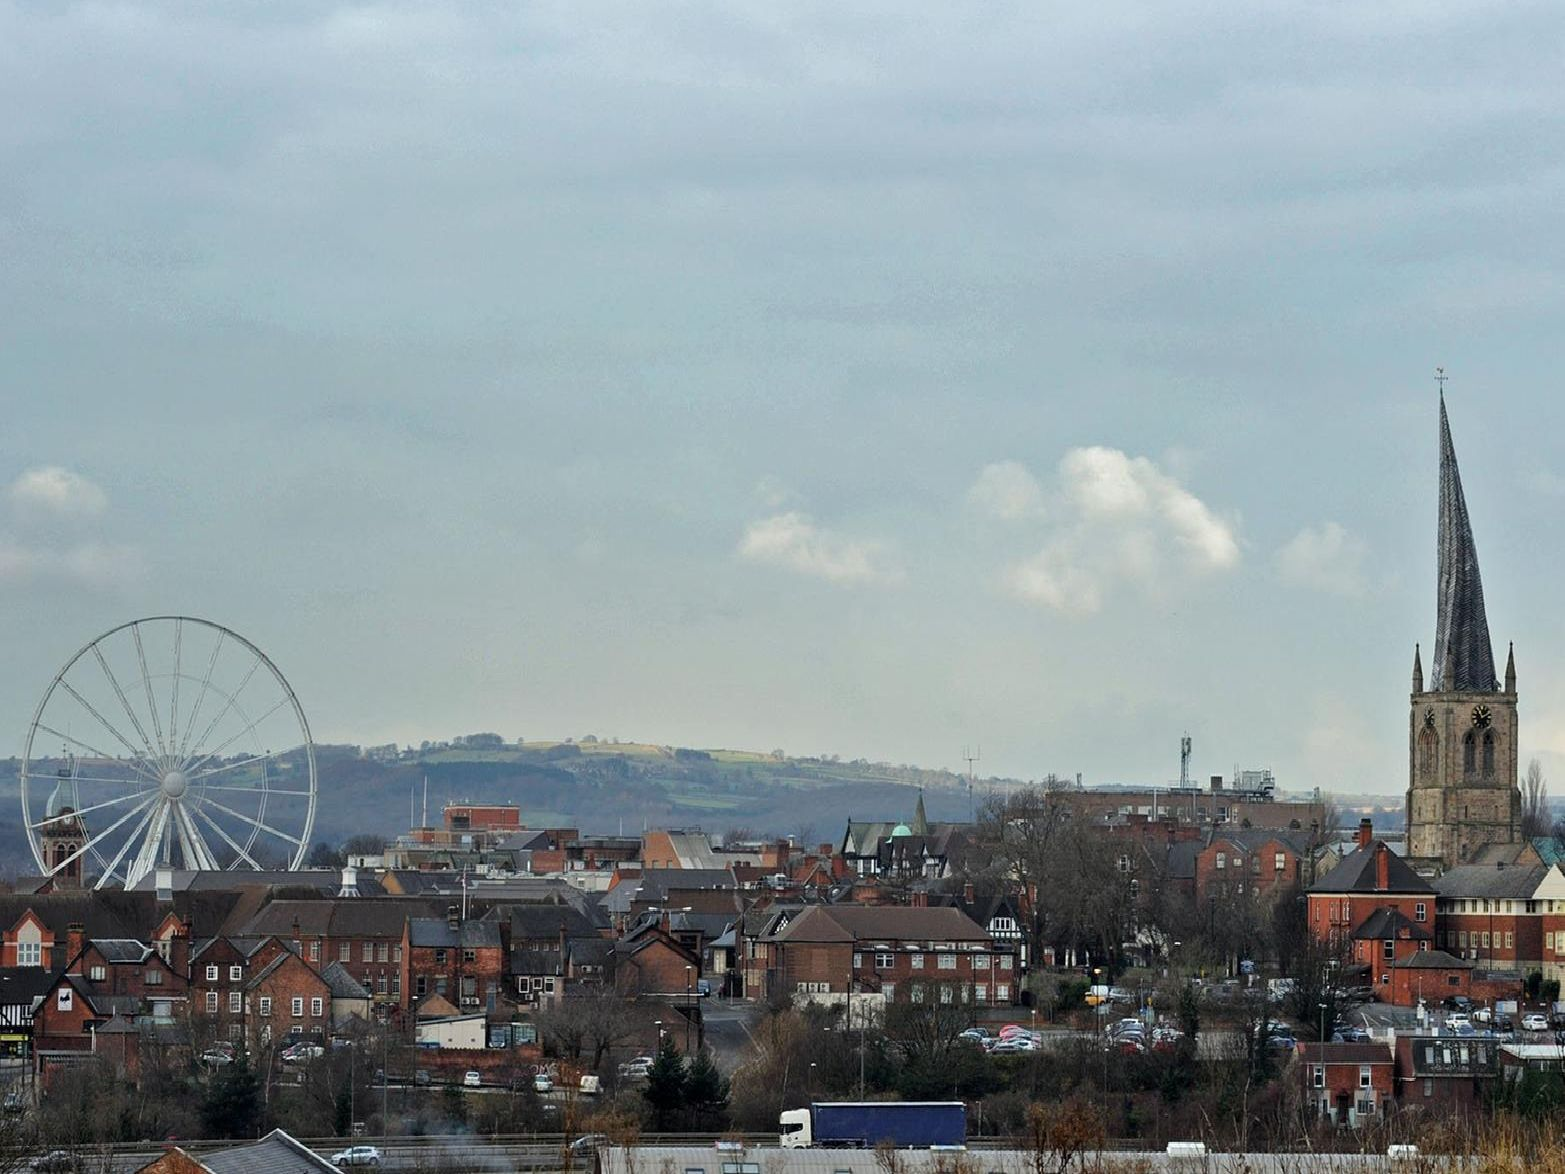 Chesterfield's skyline had a new addition with the observation wheel